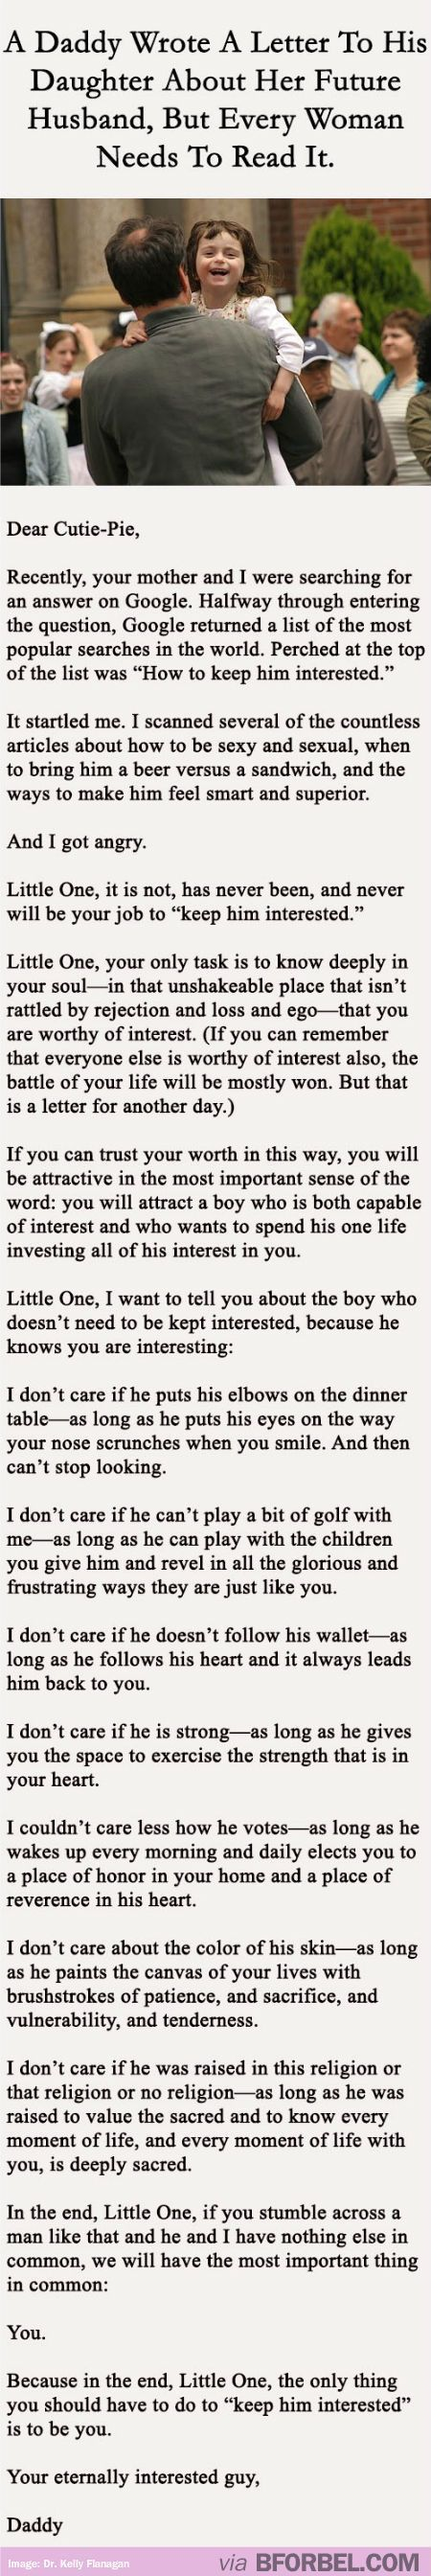 be still my heart. this is a must-read.